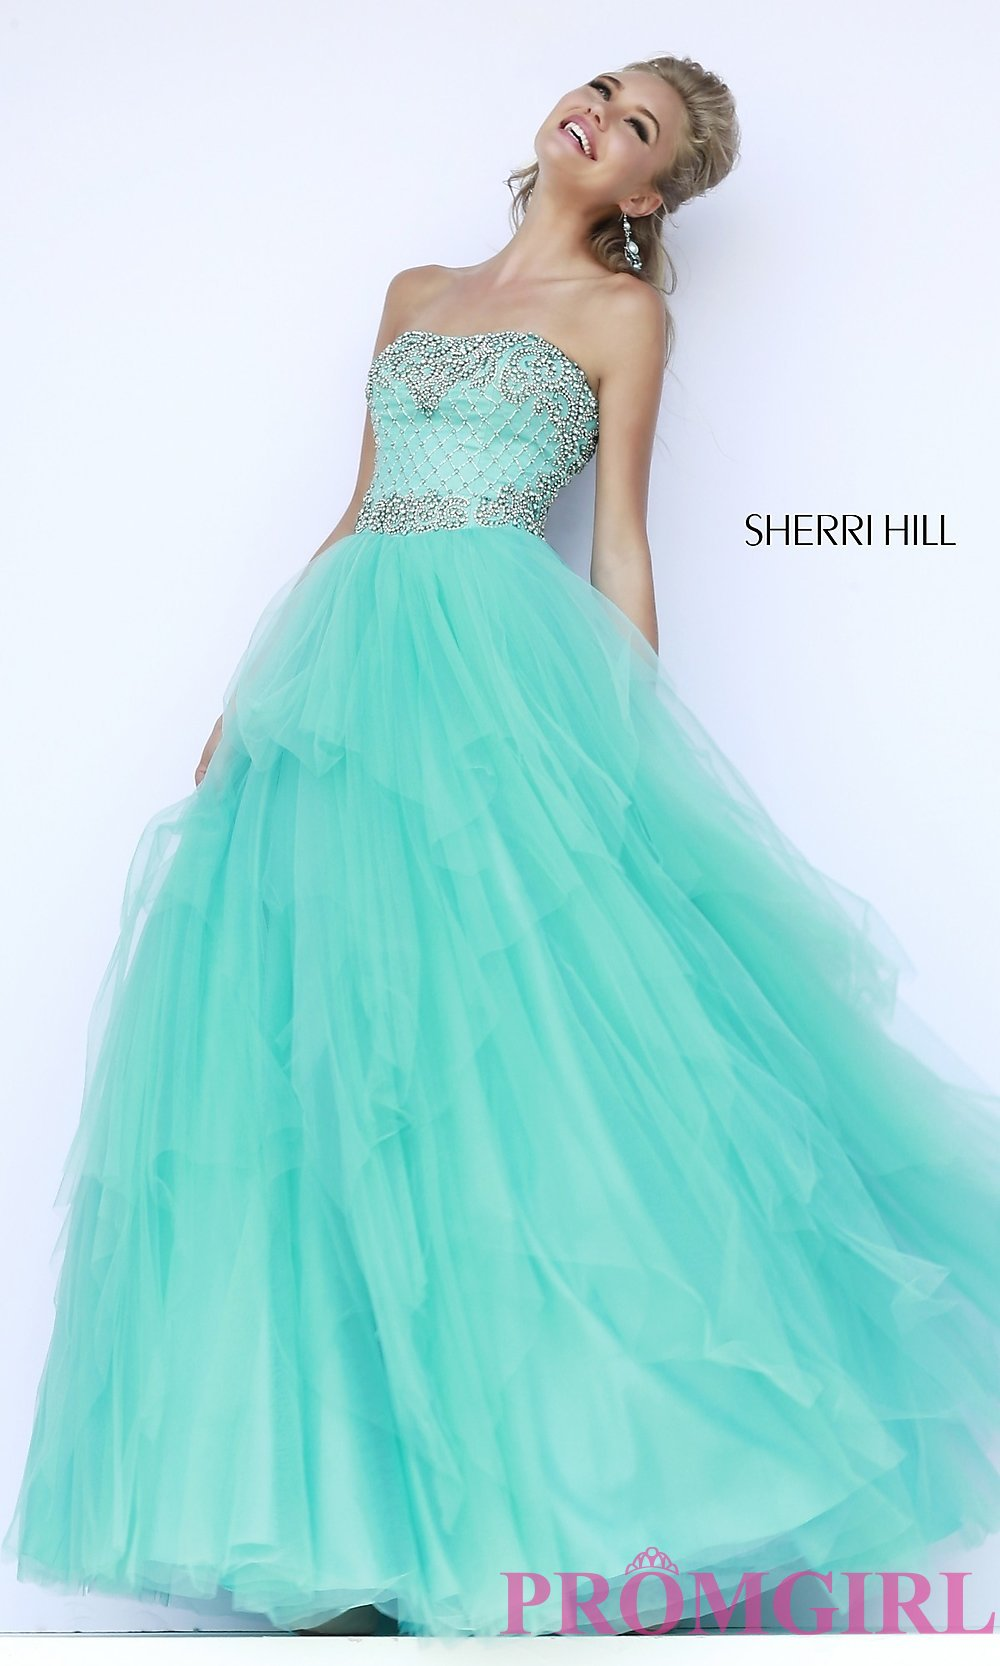 Strapless ball gown by sherri hill